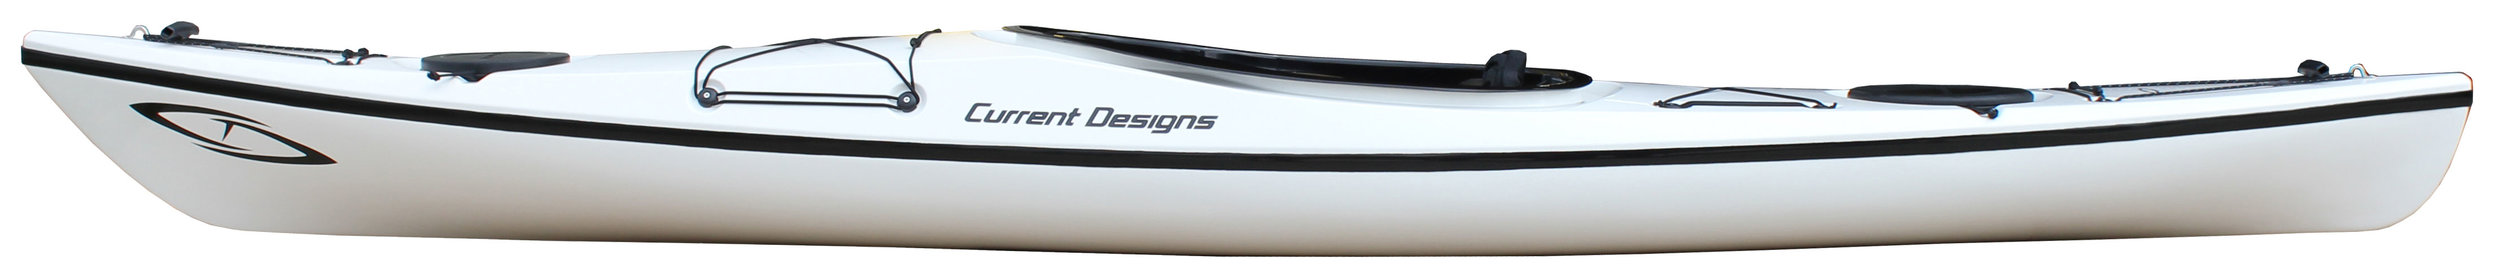 """Vision 120 SP:  The Vision 120SP is the perfect kayak for smaller paddlers who place a premium on weight and safety. This fun paddling 12' boat weighs in at a jaw dropping 32 lbs making the Vision 120SP super easy to car-top and portage to the water's edge. Length: 12' 0"""" Width: 23.00"""""""